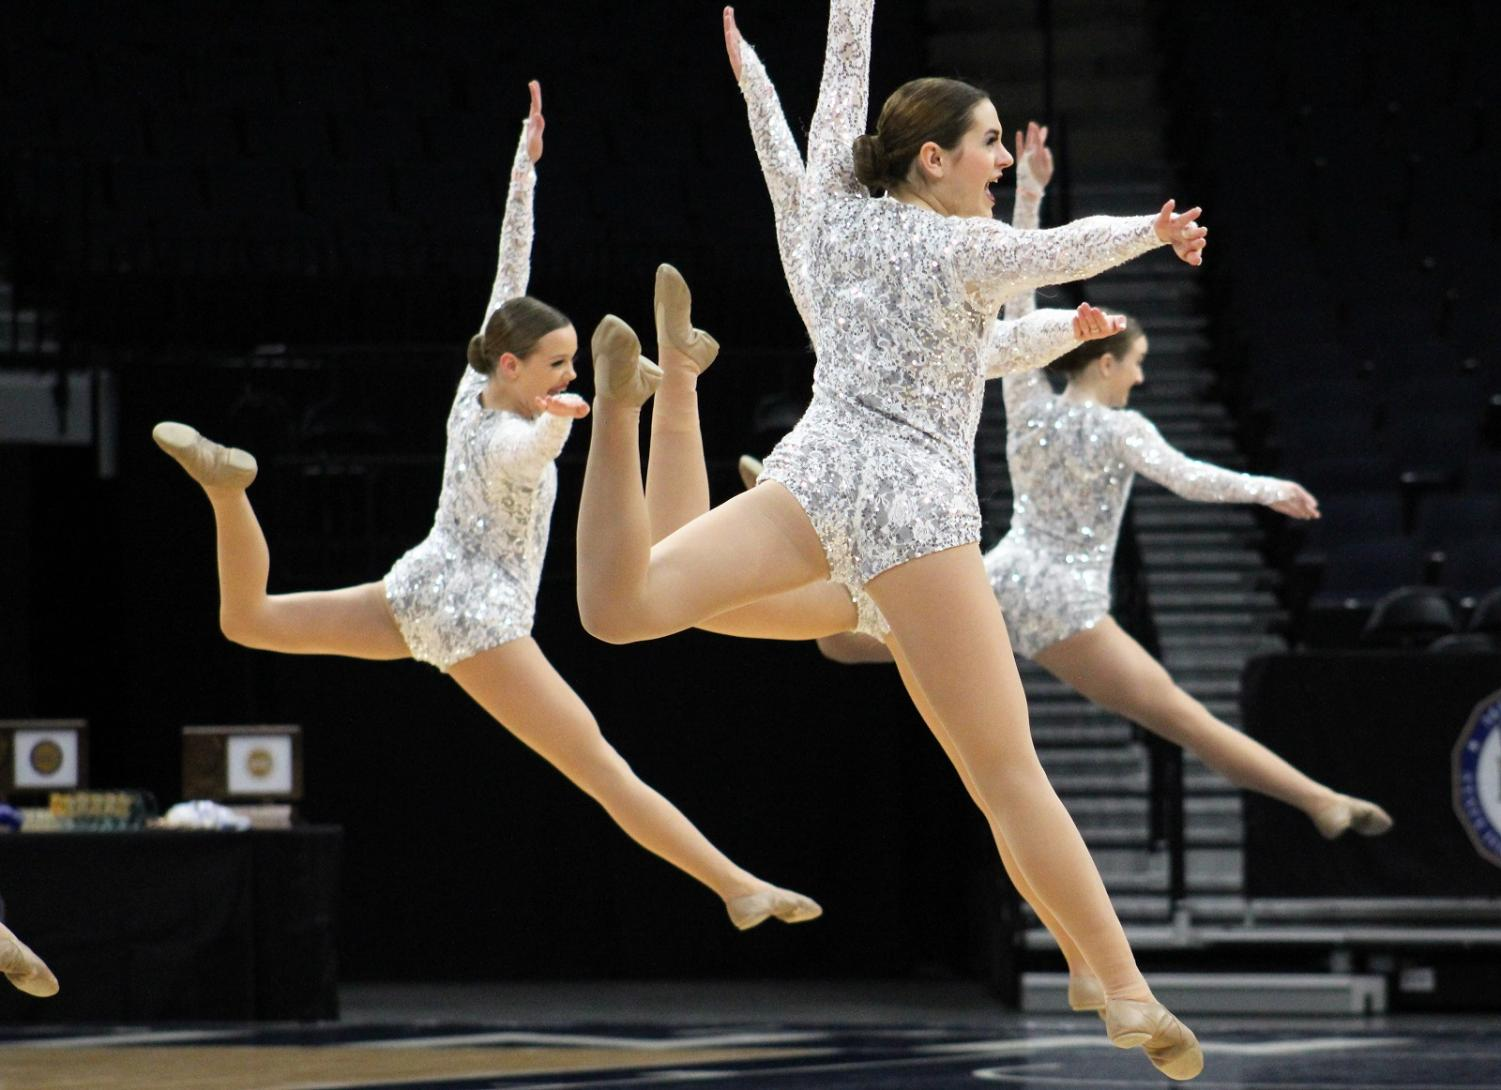 BDT doing a team firebird leap